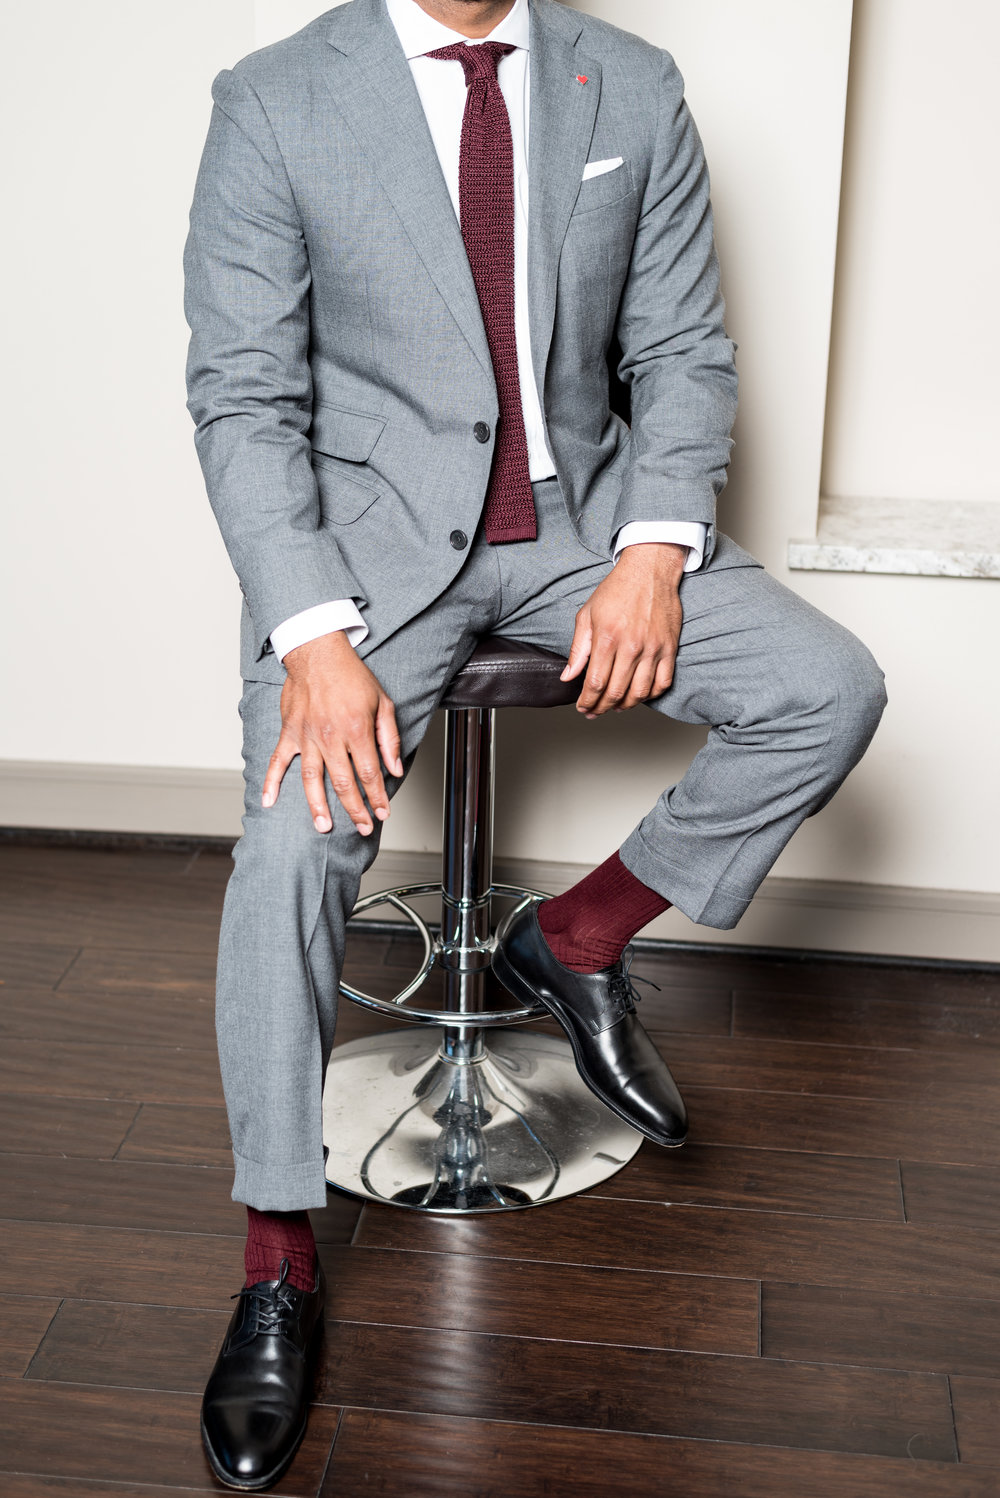 Suit, tie, shirt and socks by Sid Mashburn